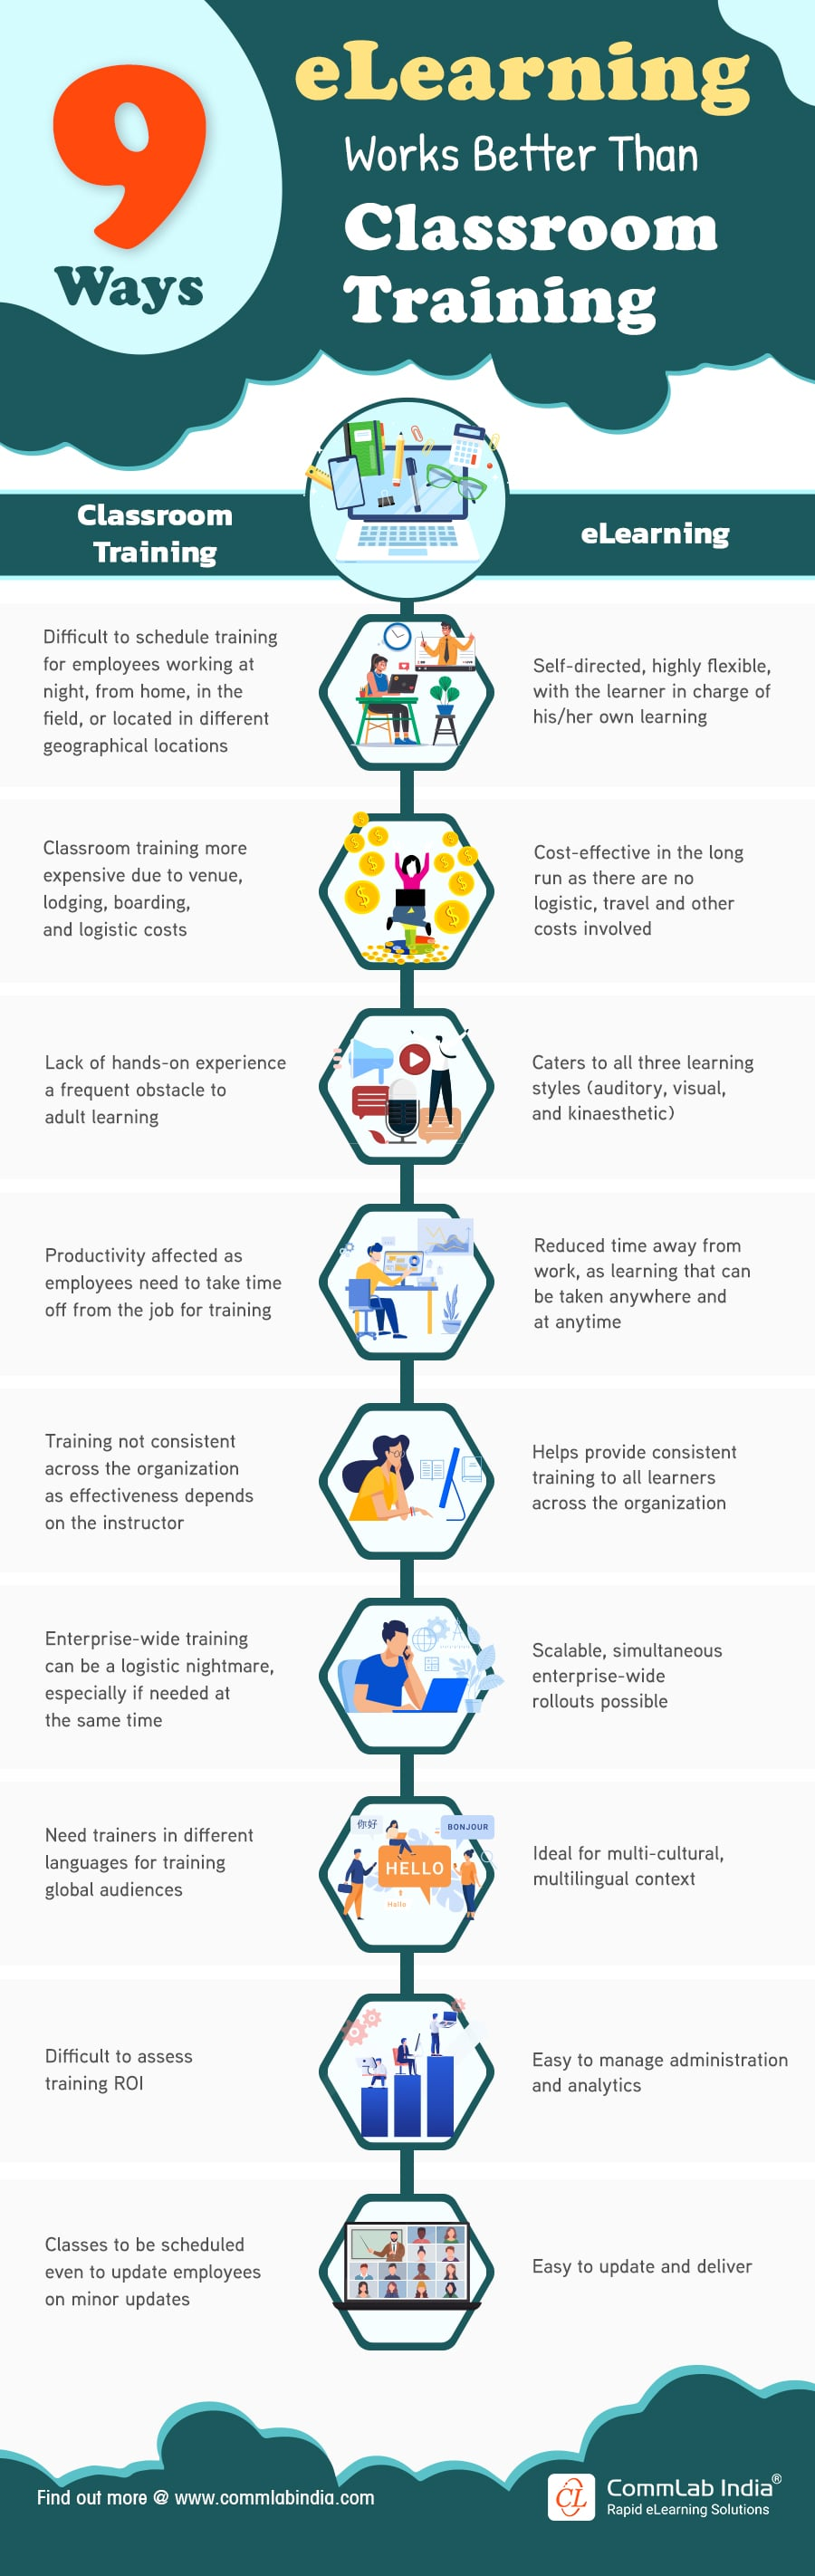 eLearning: 9 Ways it is Better than Classroom Training